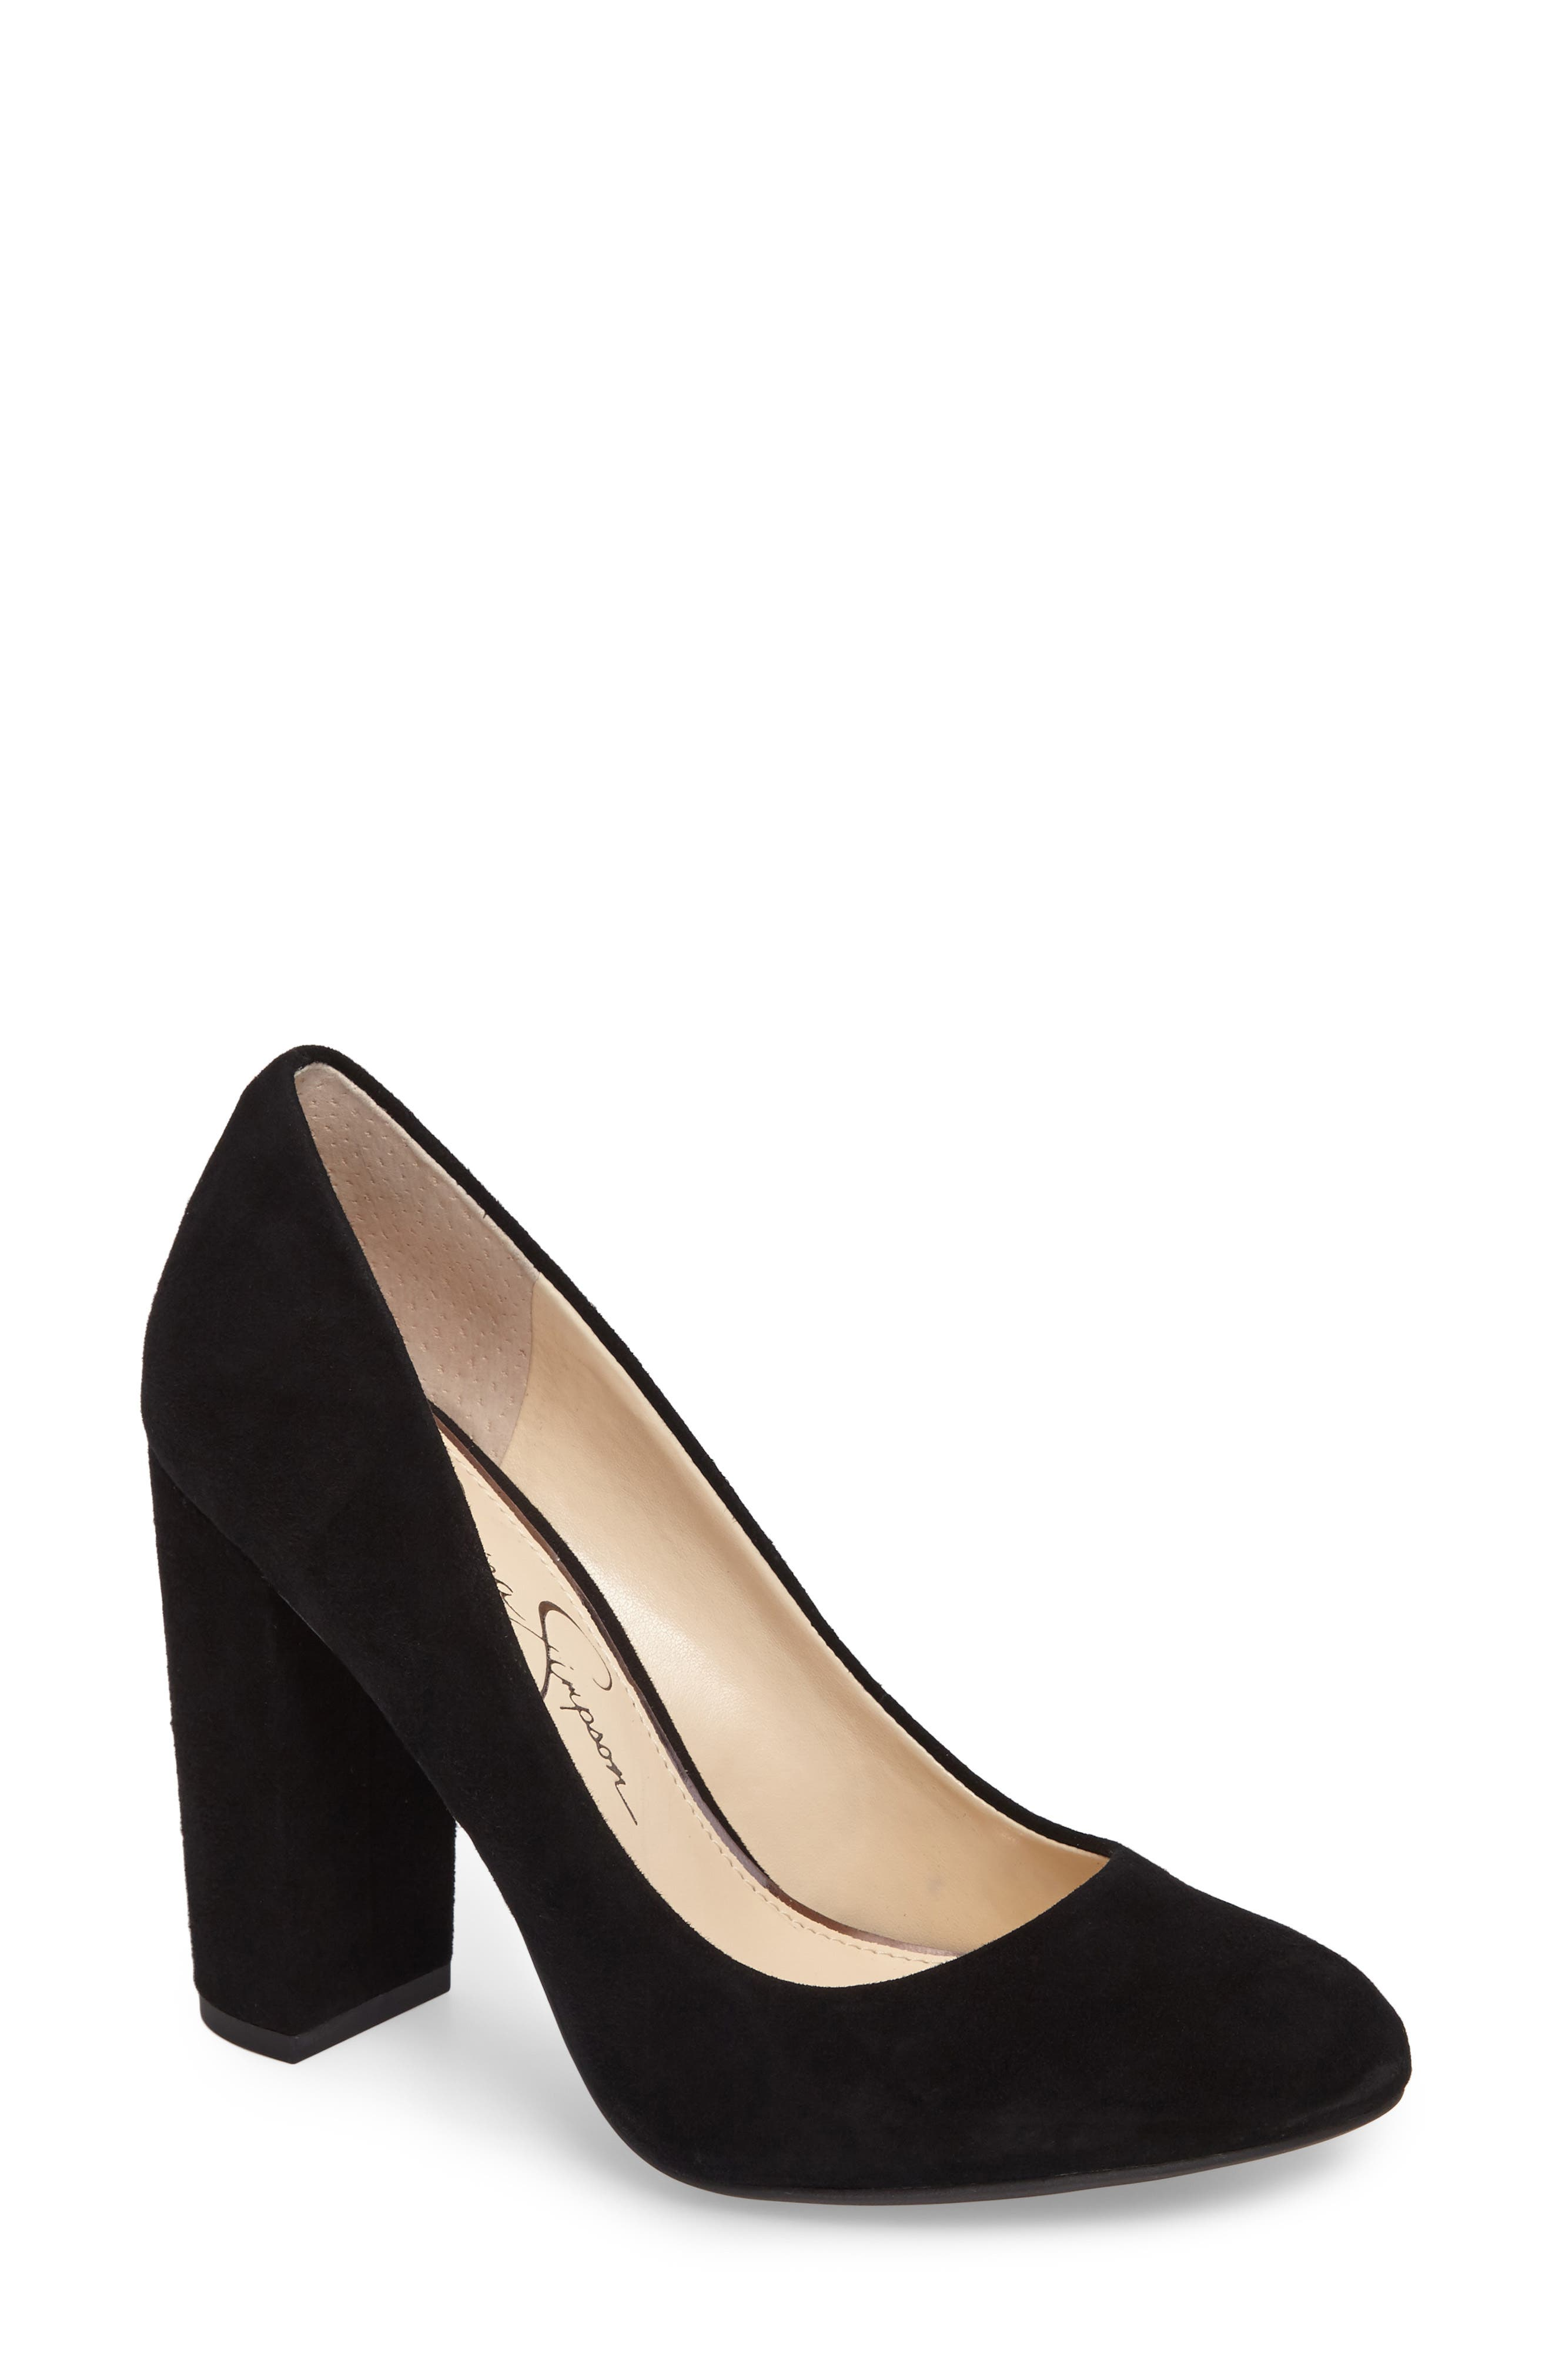 Alternate Image 1 Selected - Jessica Simpson Belemo Pump (Women)